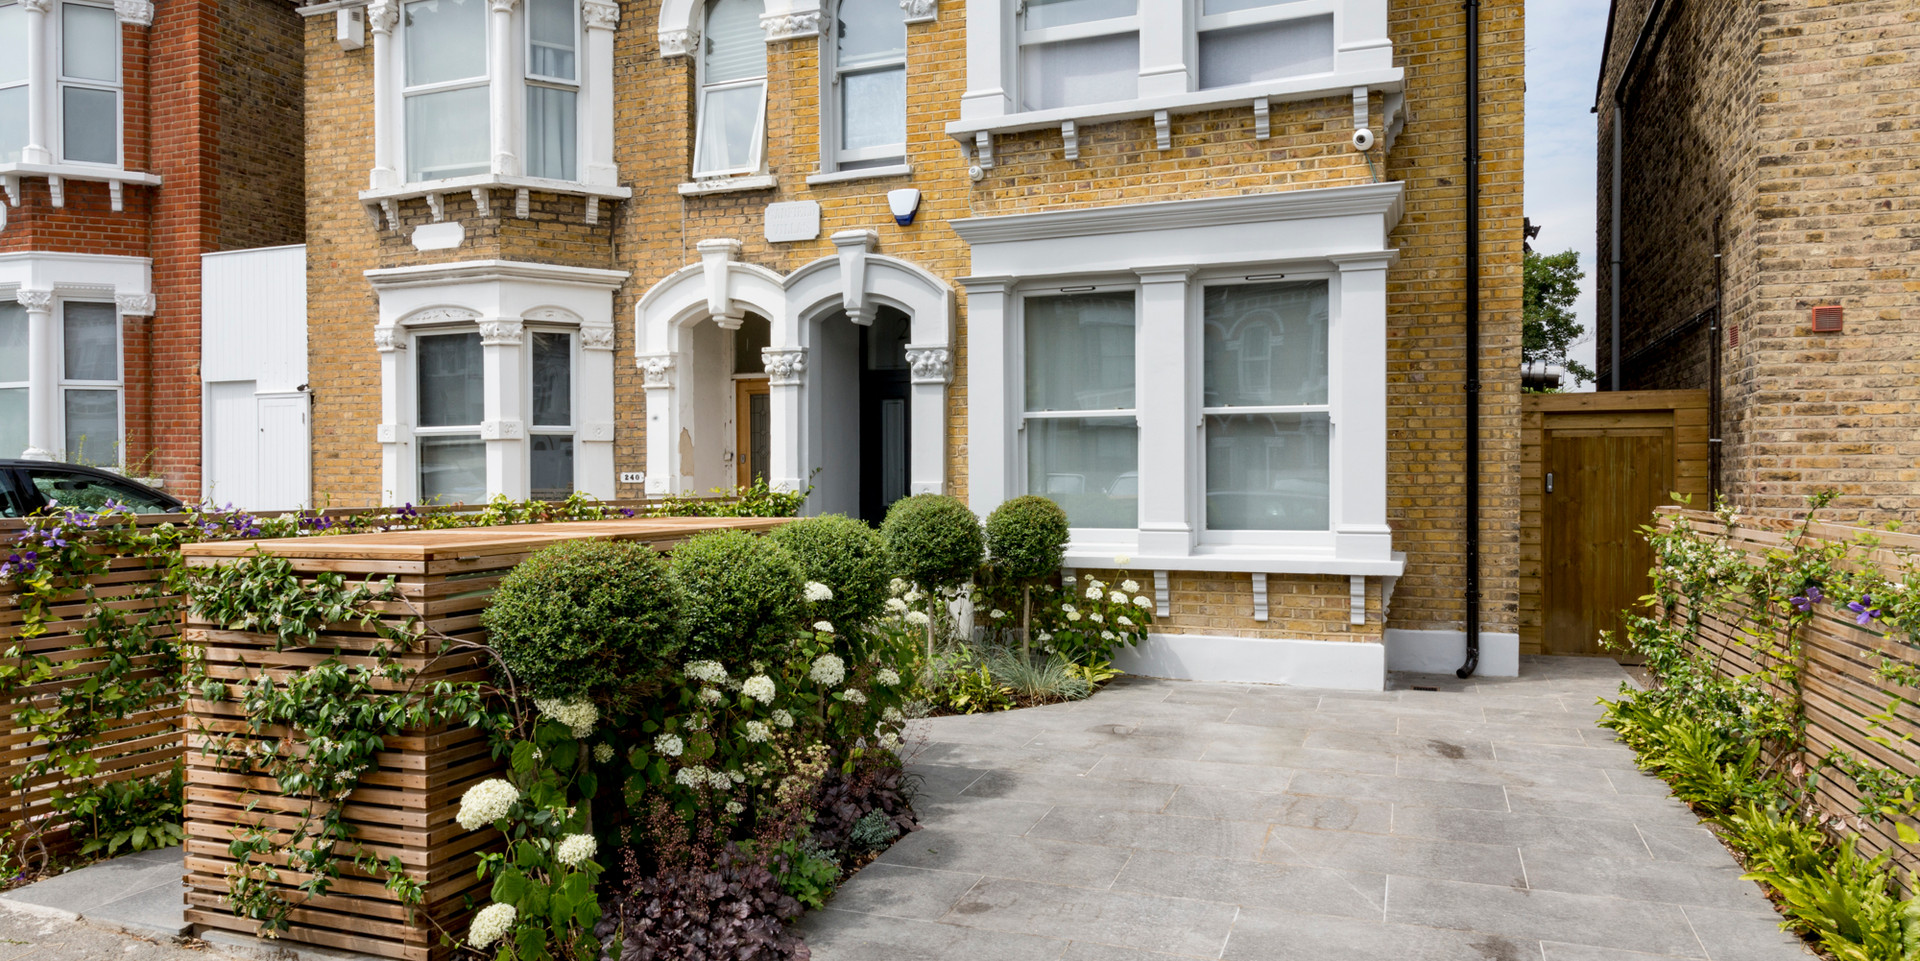 South London Front.jpg